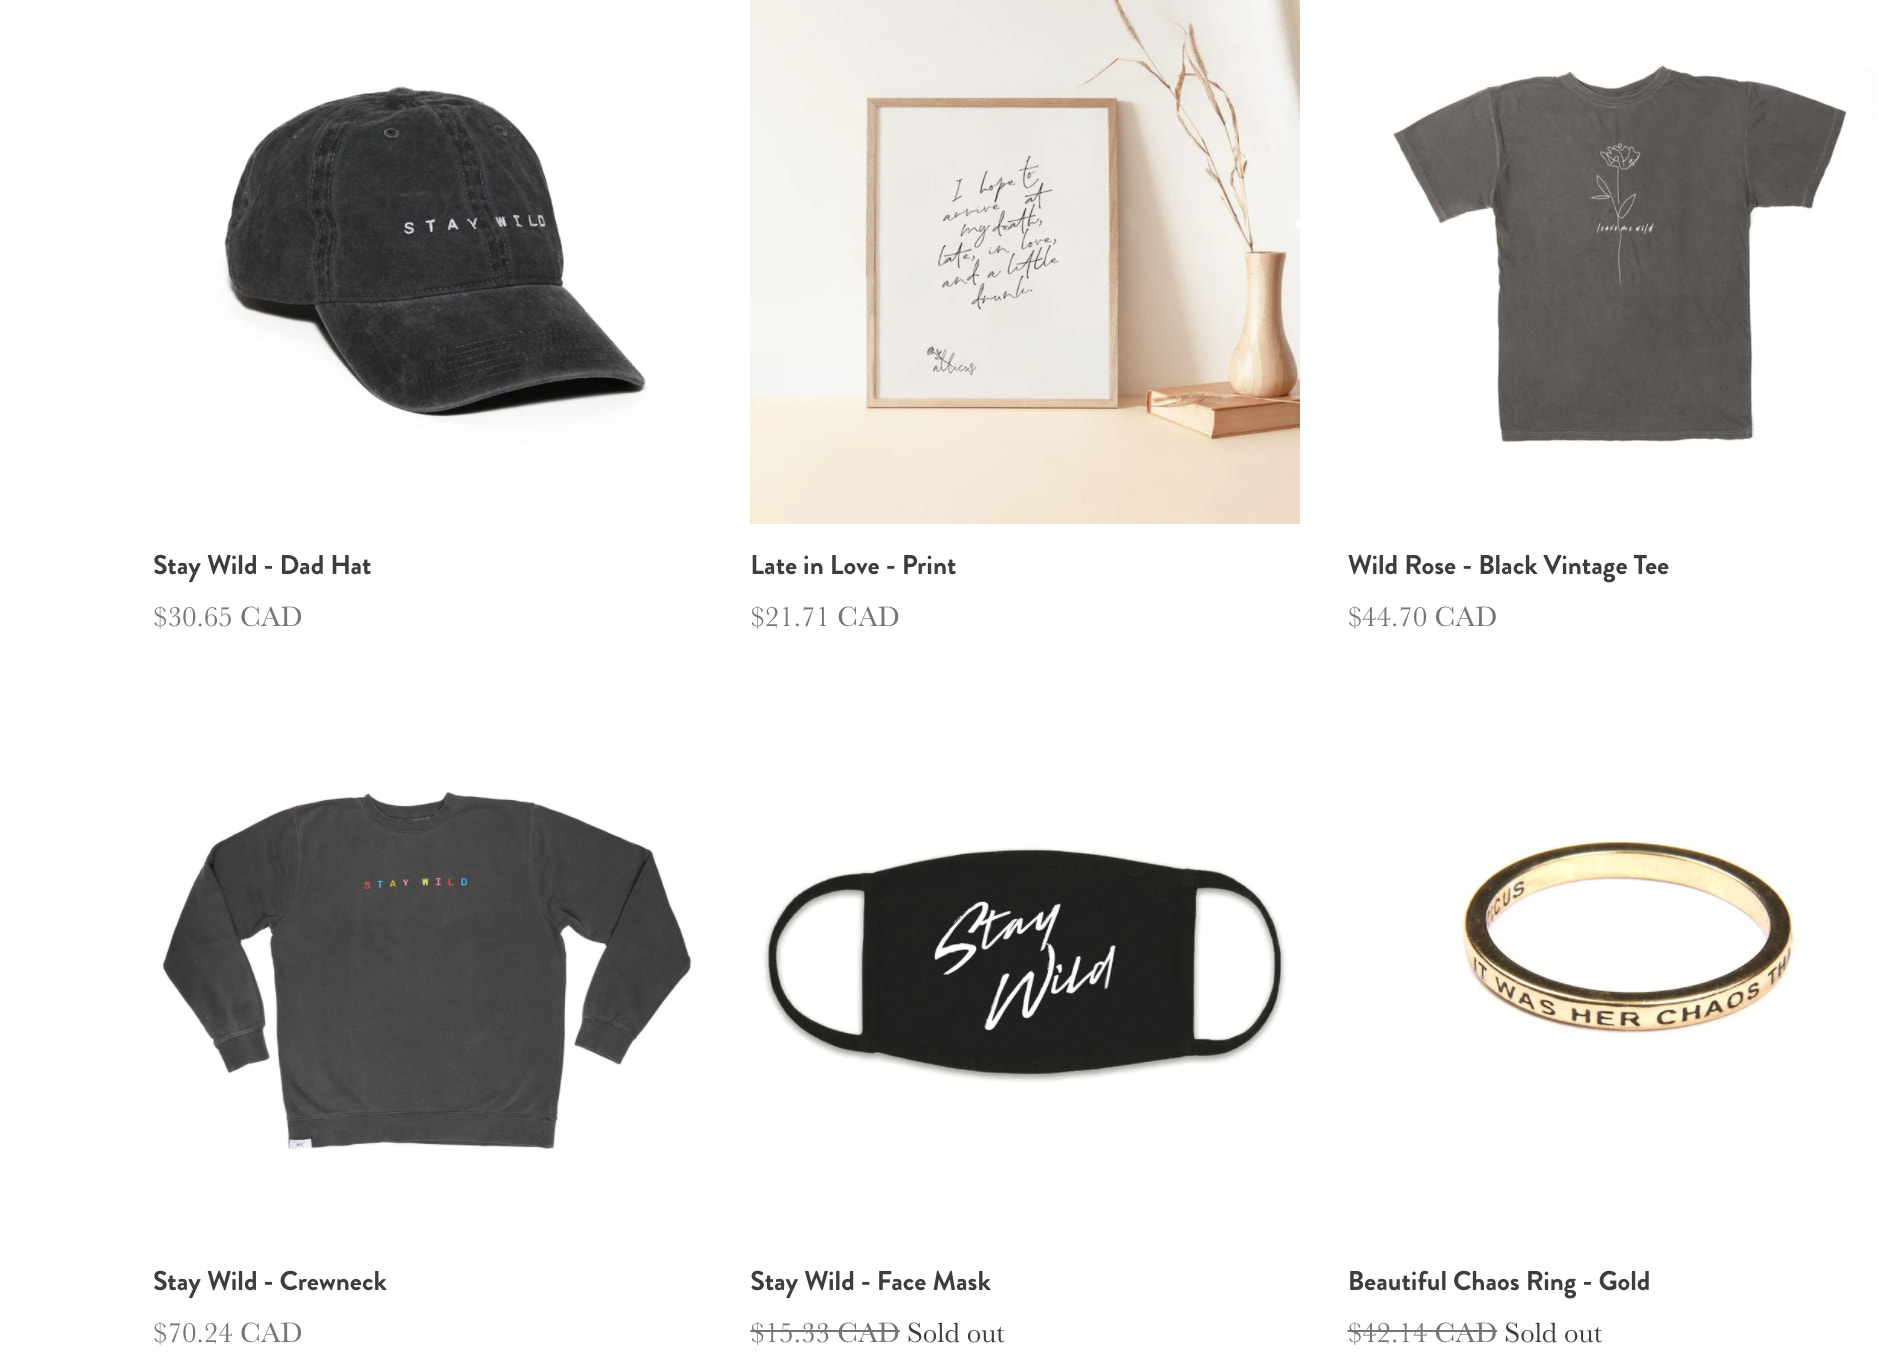 atticus's merch store, which sells dad hats, prints, rings, and more